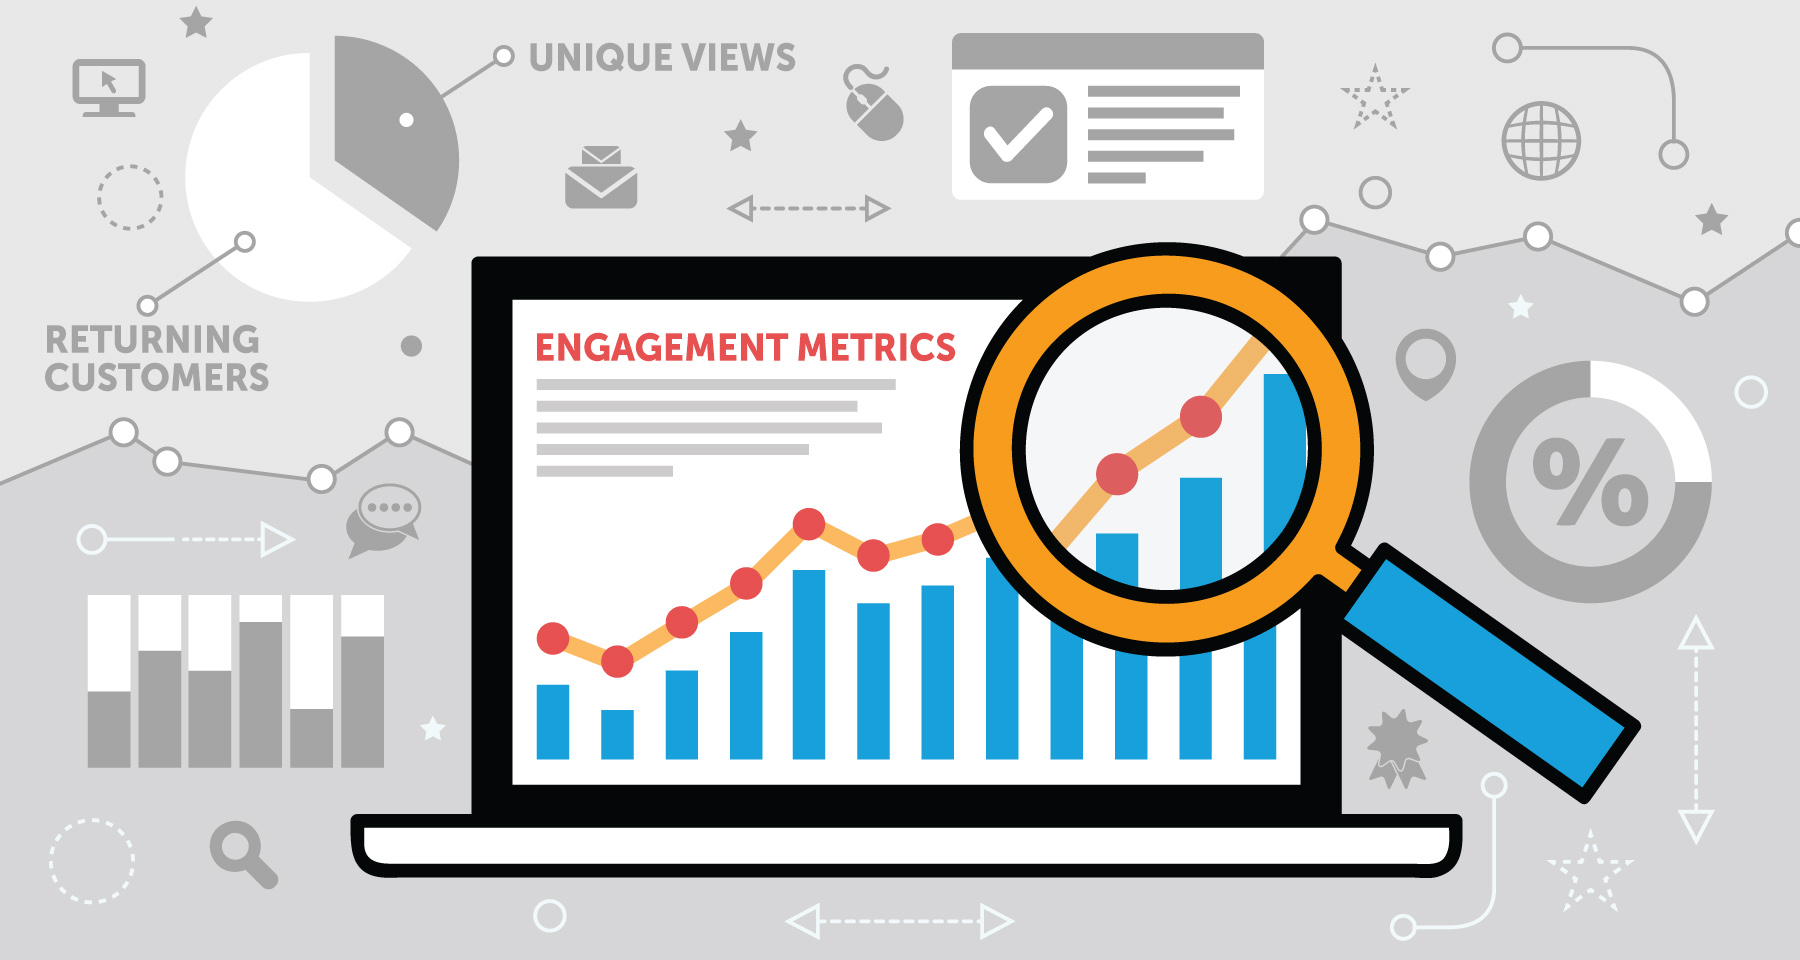 Meaningful newsroom metrics in 3 easy moves